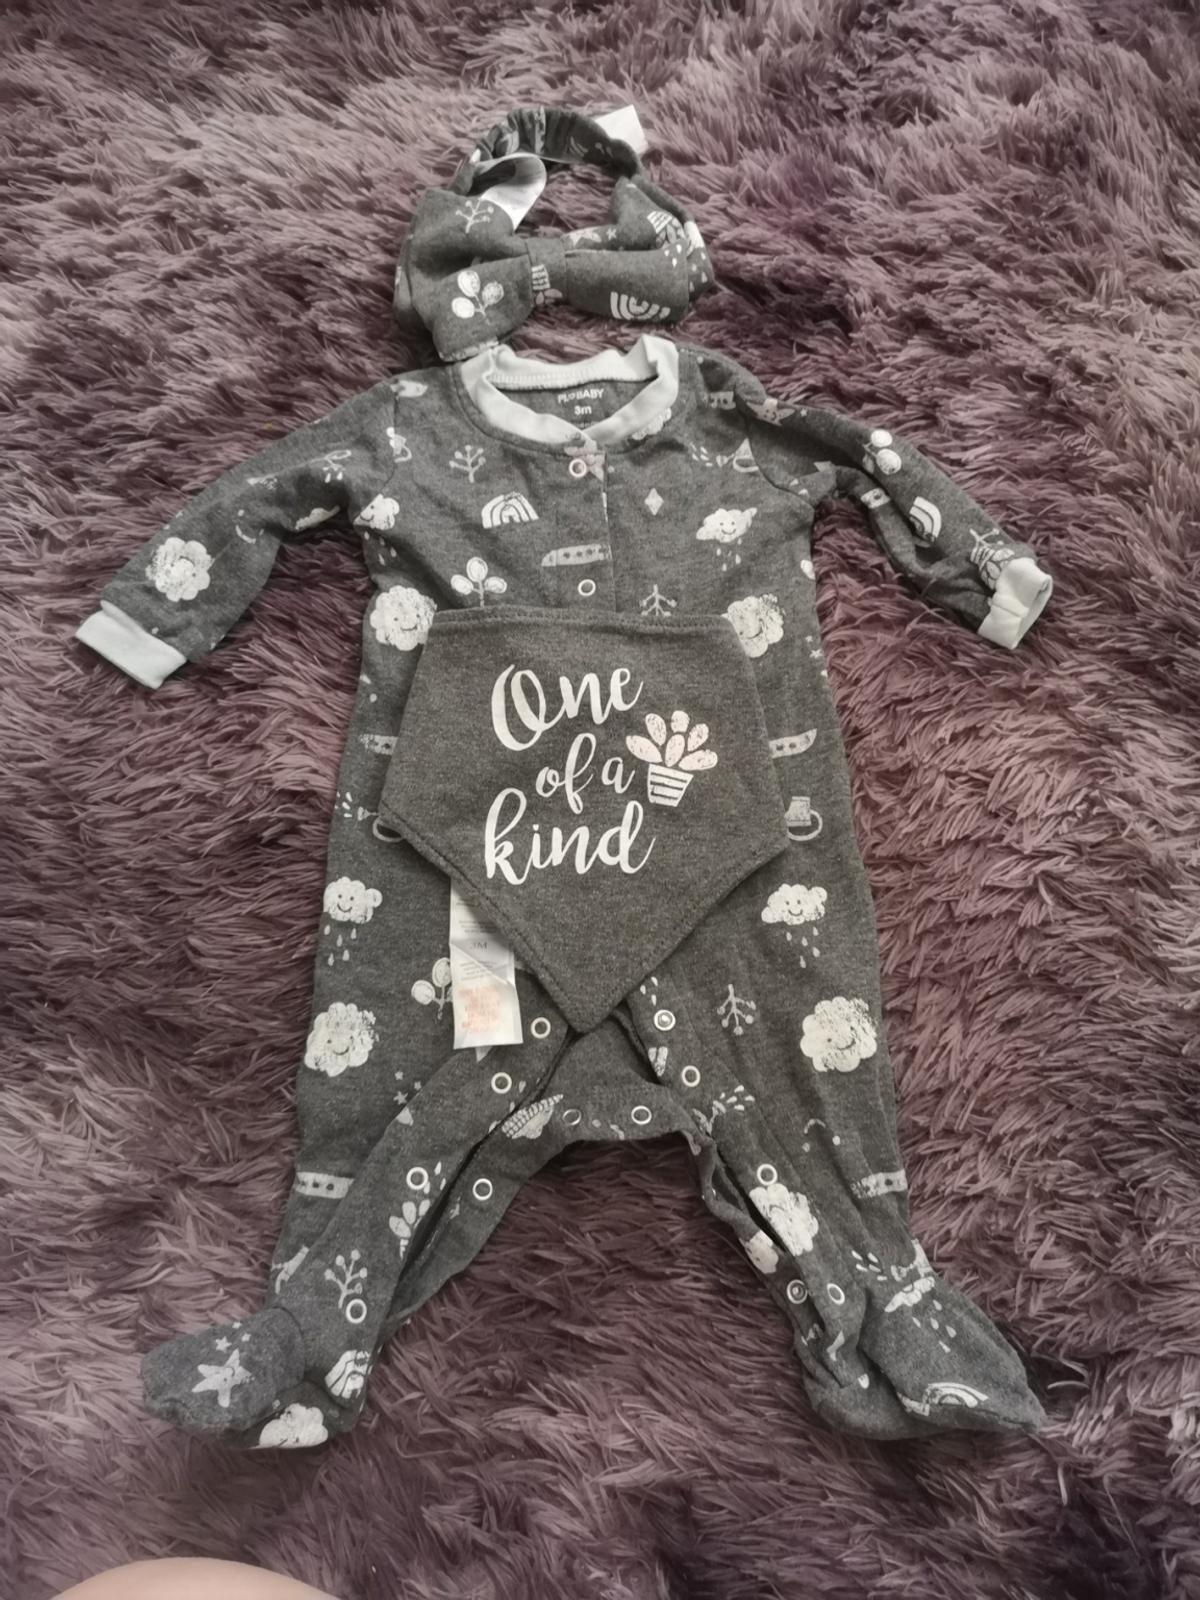 eeacd056d821f baby girl outfits in WV14 Wolverhampton for £3.00 for sale - Shpock